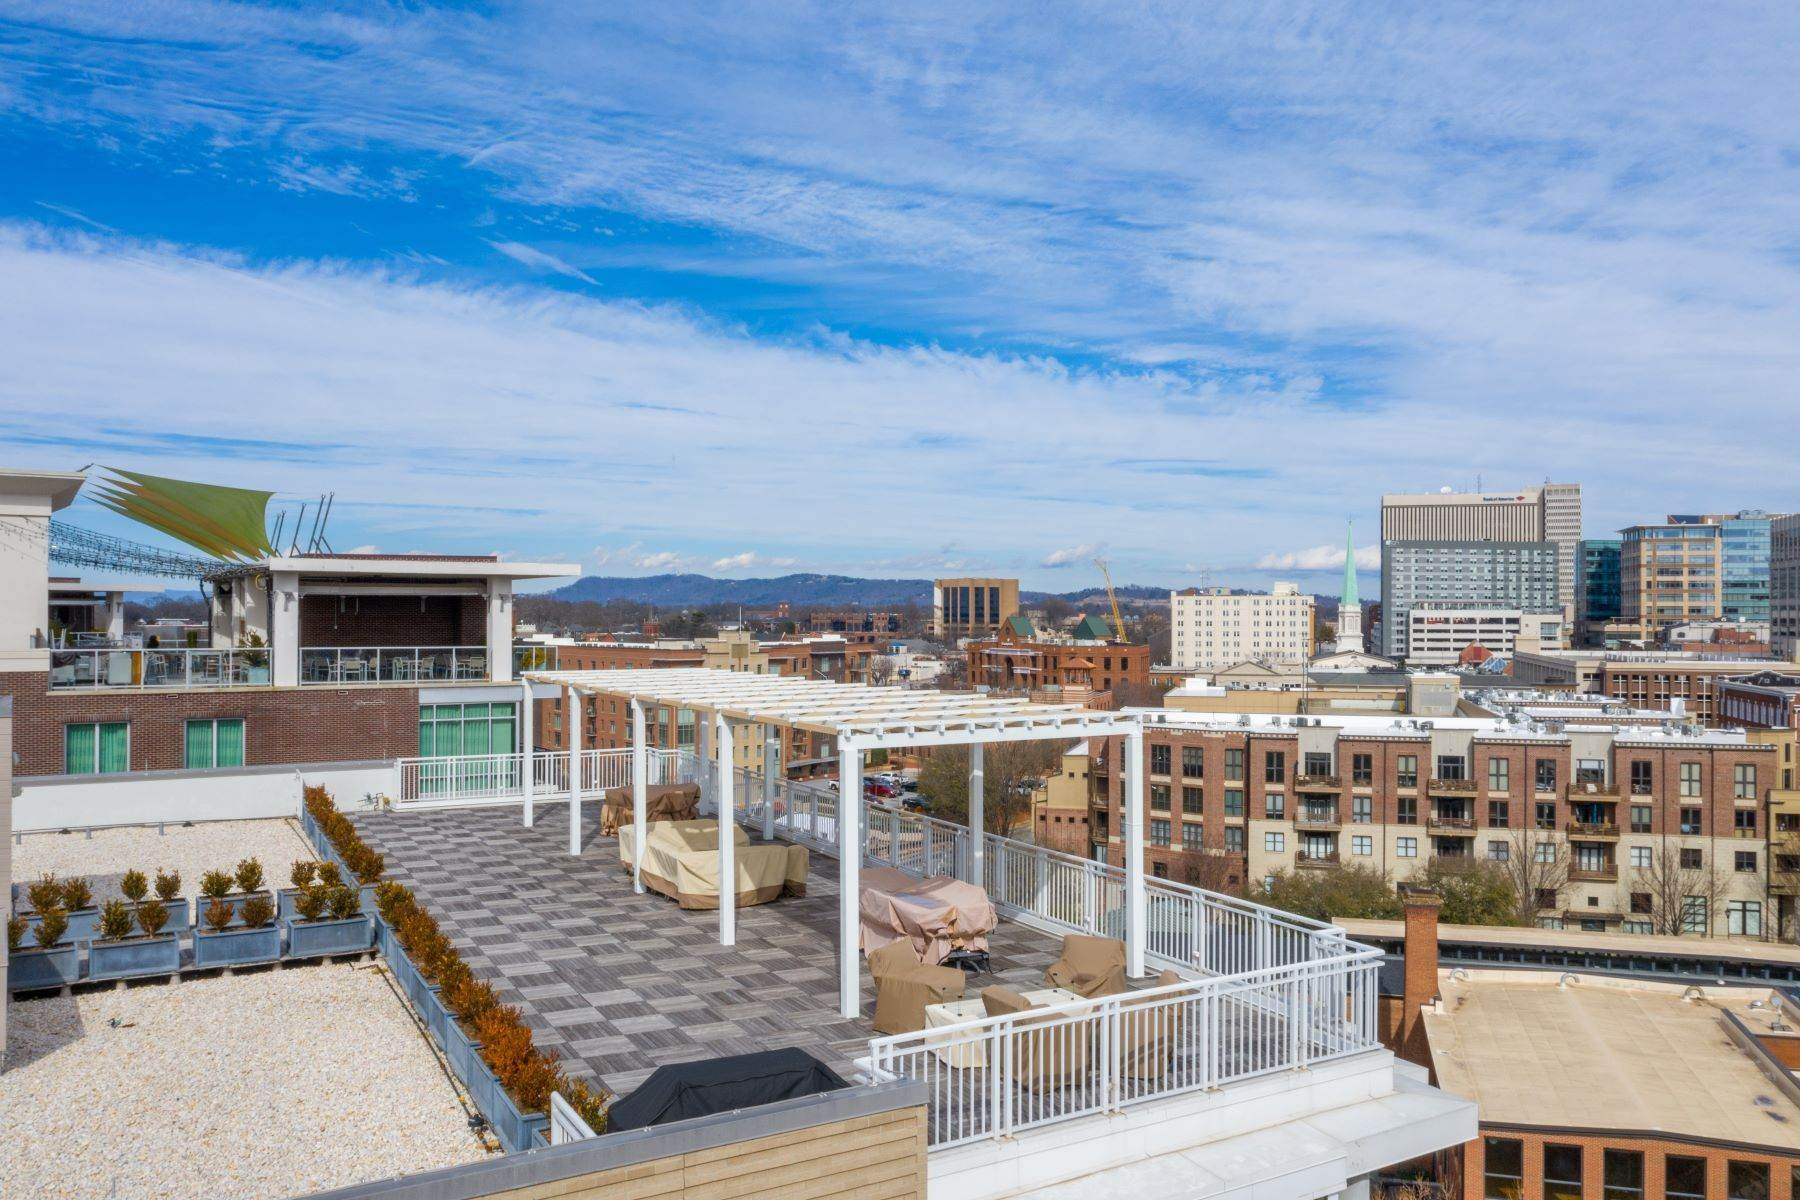 3. Condominiums for Sale at 220 Riverplace, Greenville, SC 29601 220 Riverplace, unit 702, Greenville, SC 29601